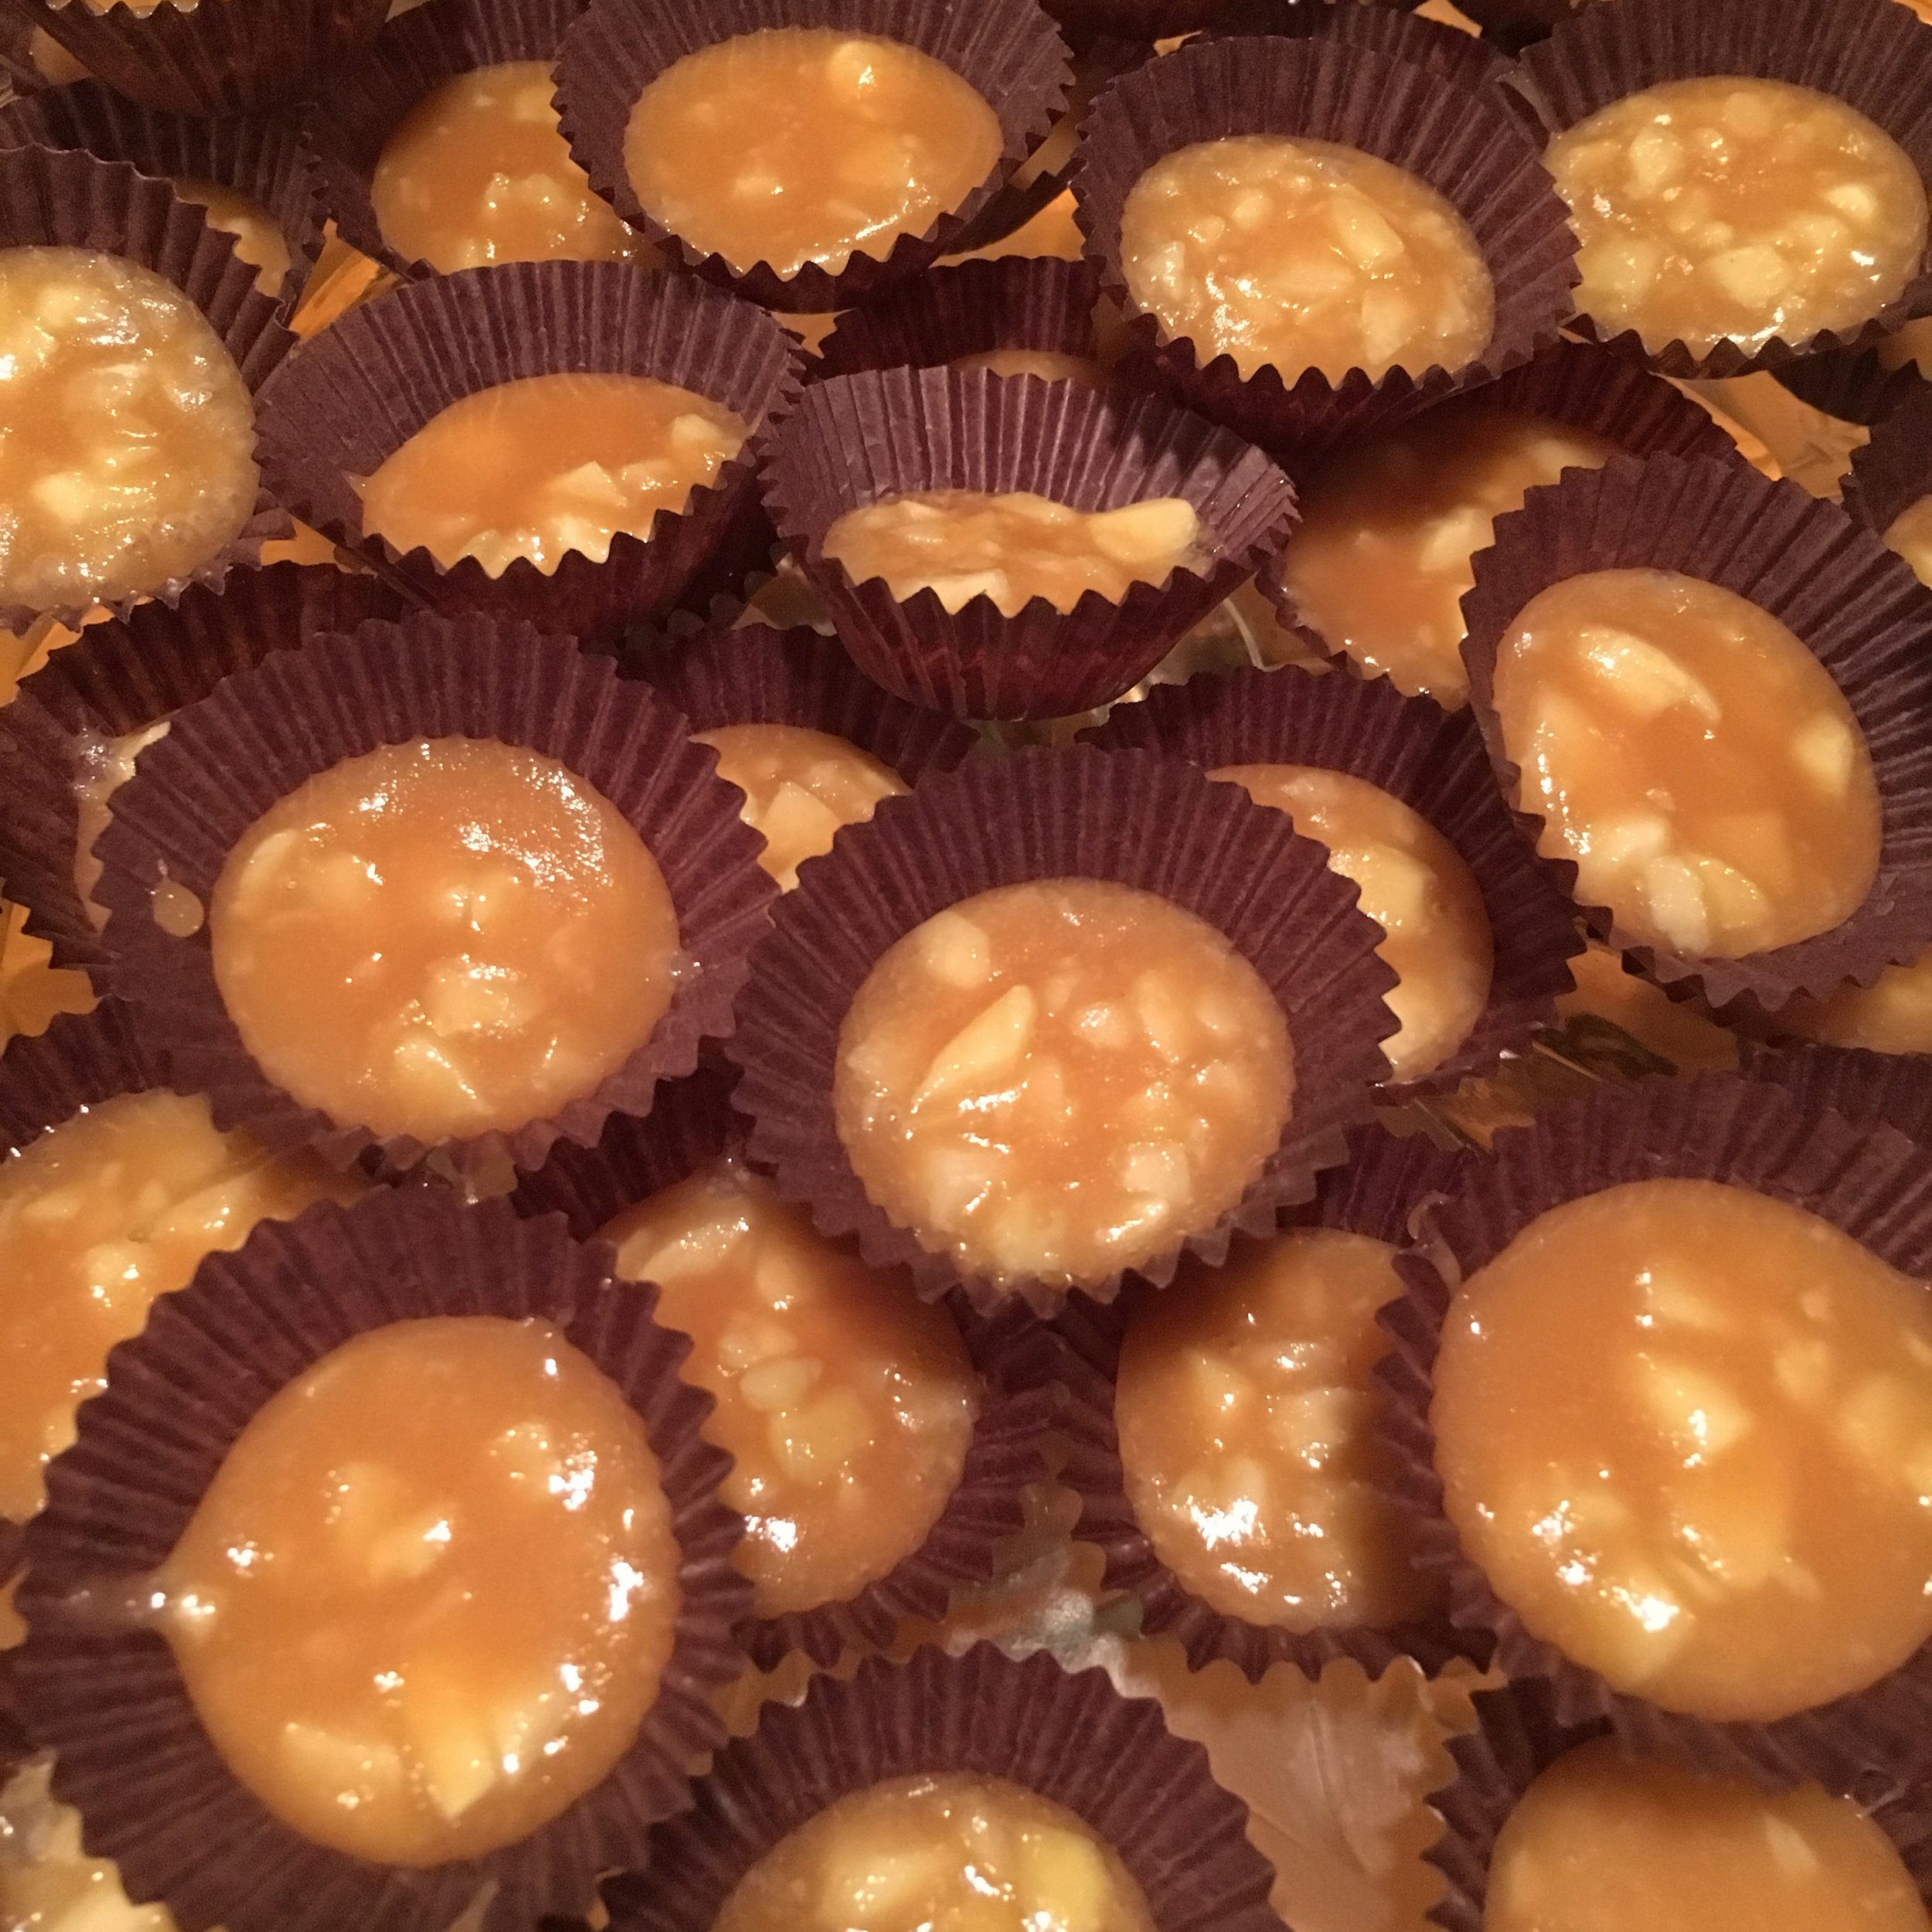 """Our  judodis  of choice, the classic toffee ( klassick knack).  For the recipe, click  here  (you might have to click """"translate"""" in the toolbar)."""